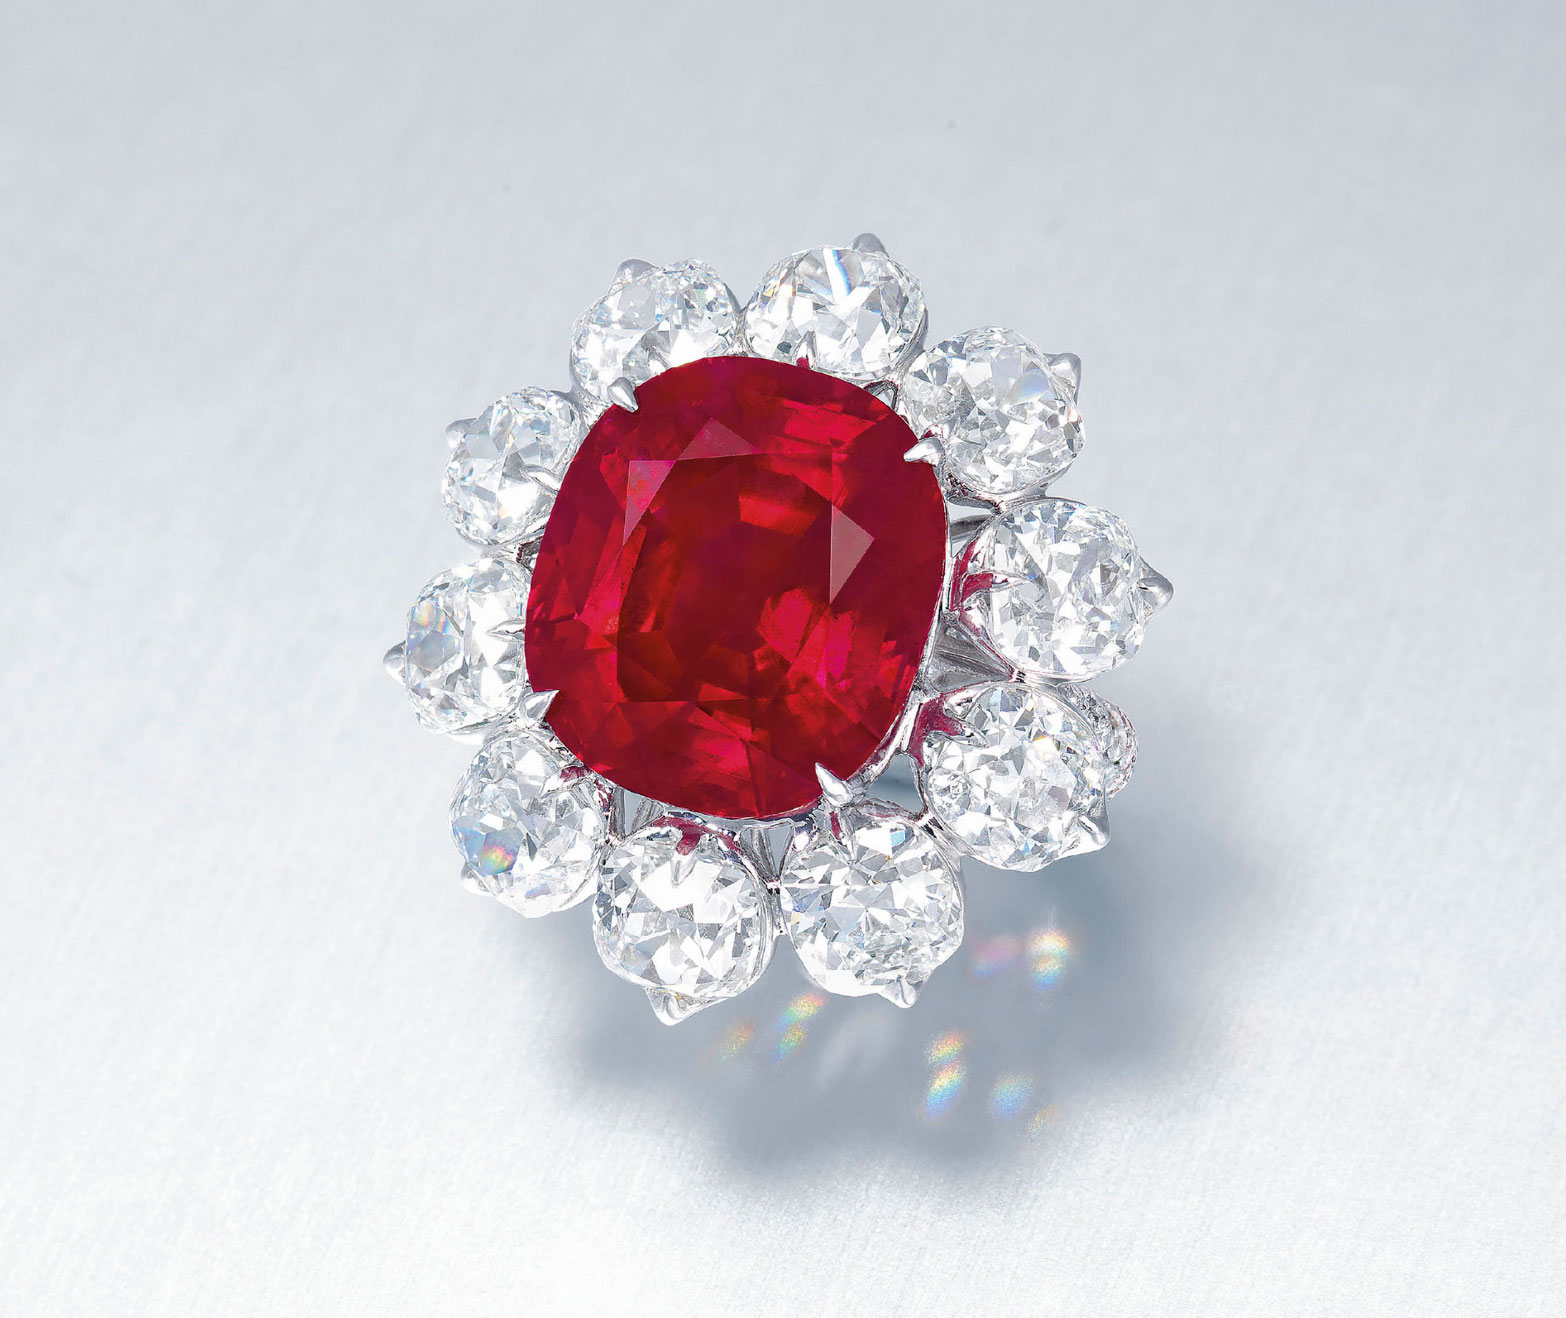 ruby among diamonds